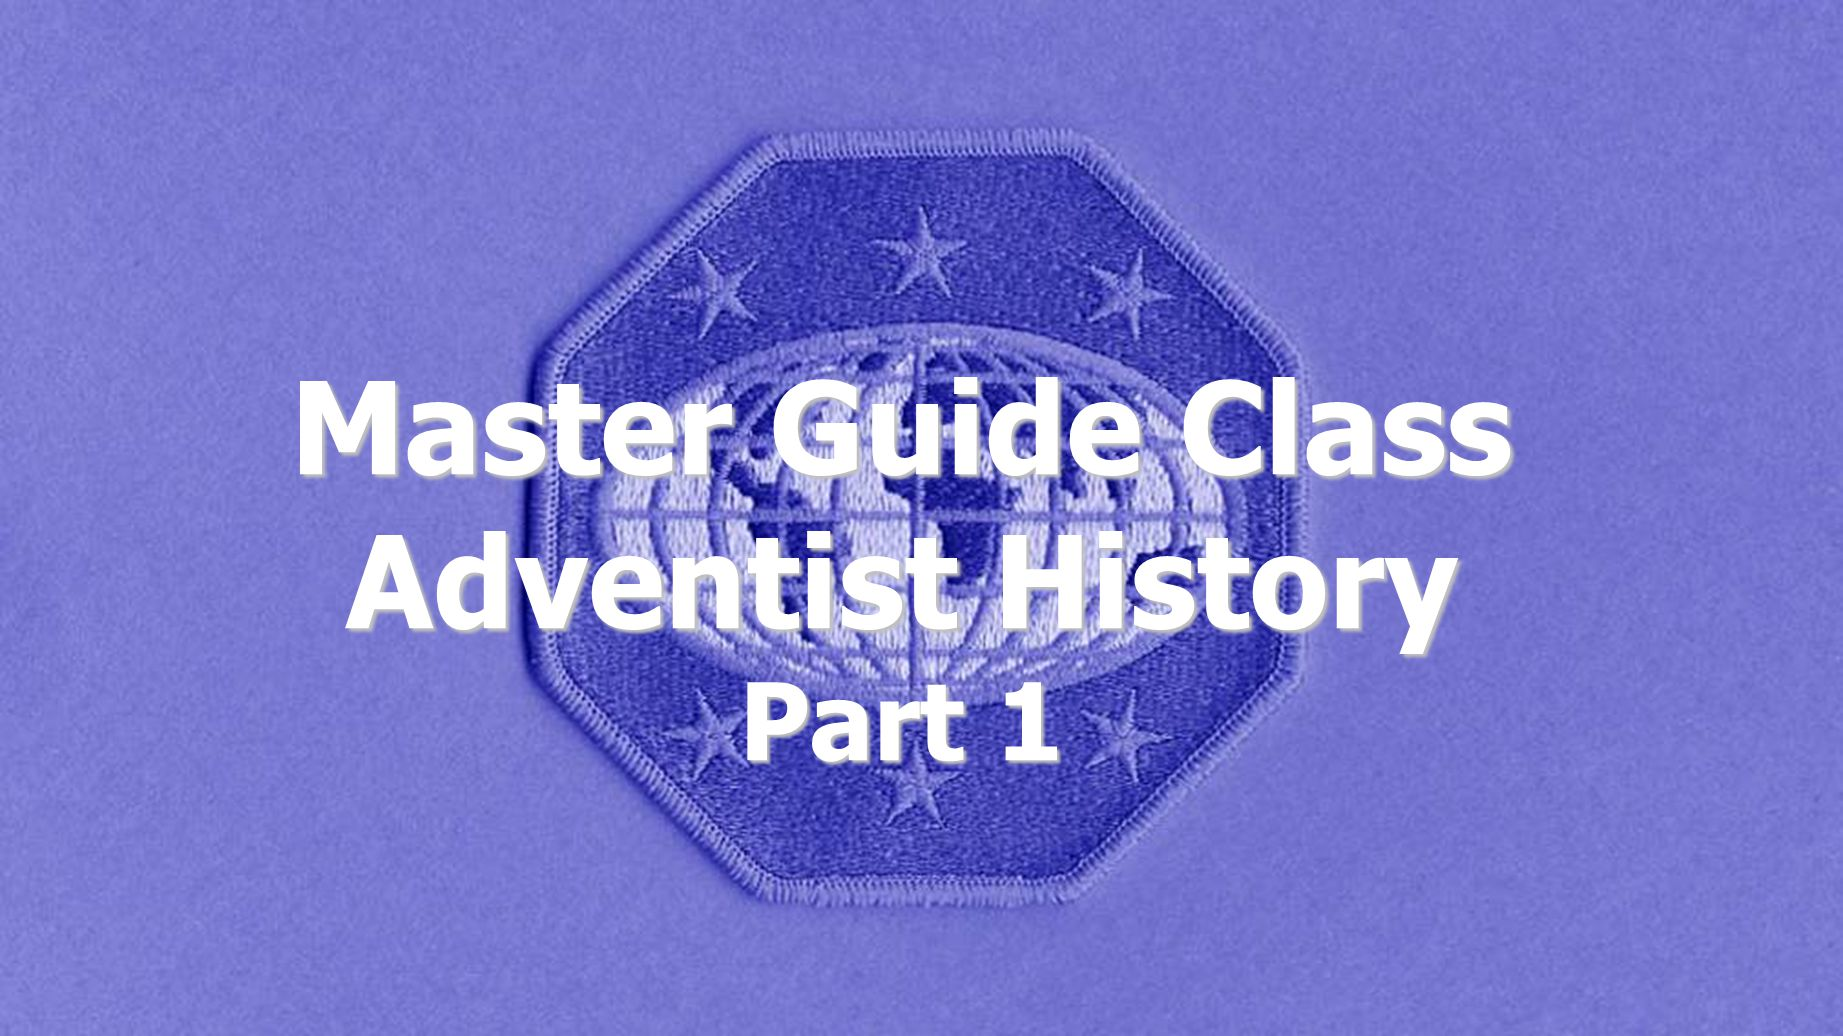 Master Guide Class Adventist History Part 1